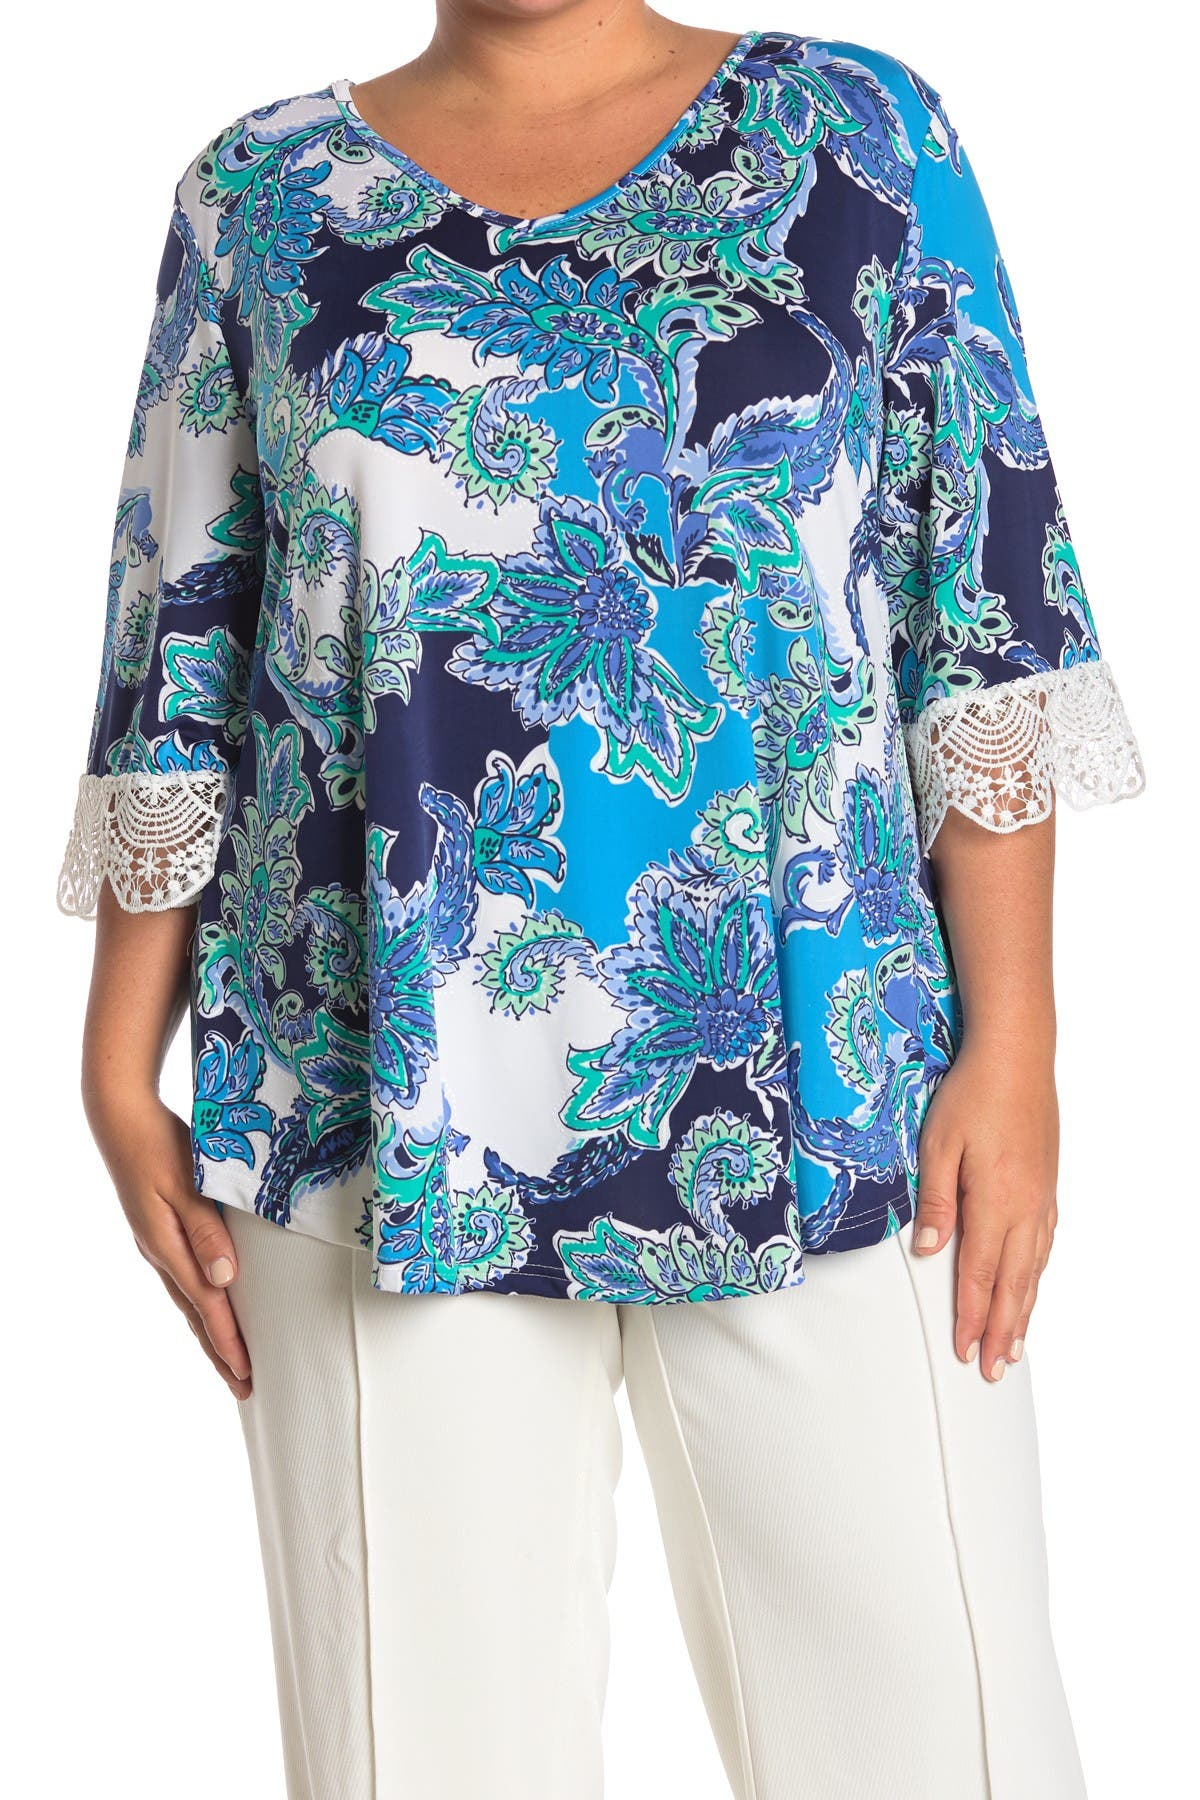 Image of STEM AND VINE Printed Scallop Lace Trim Top